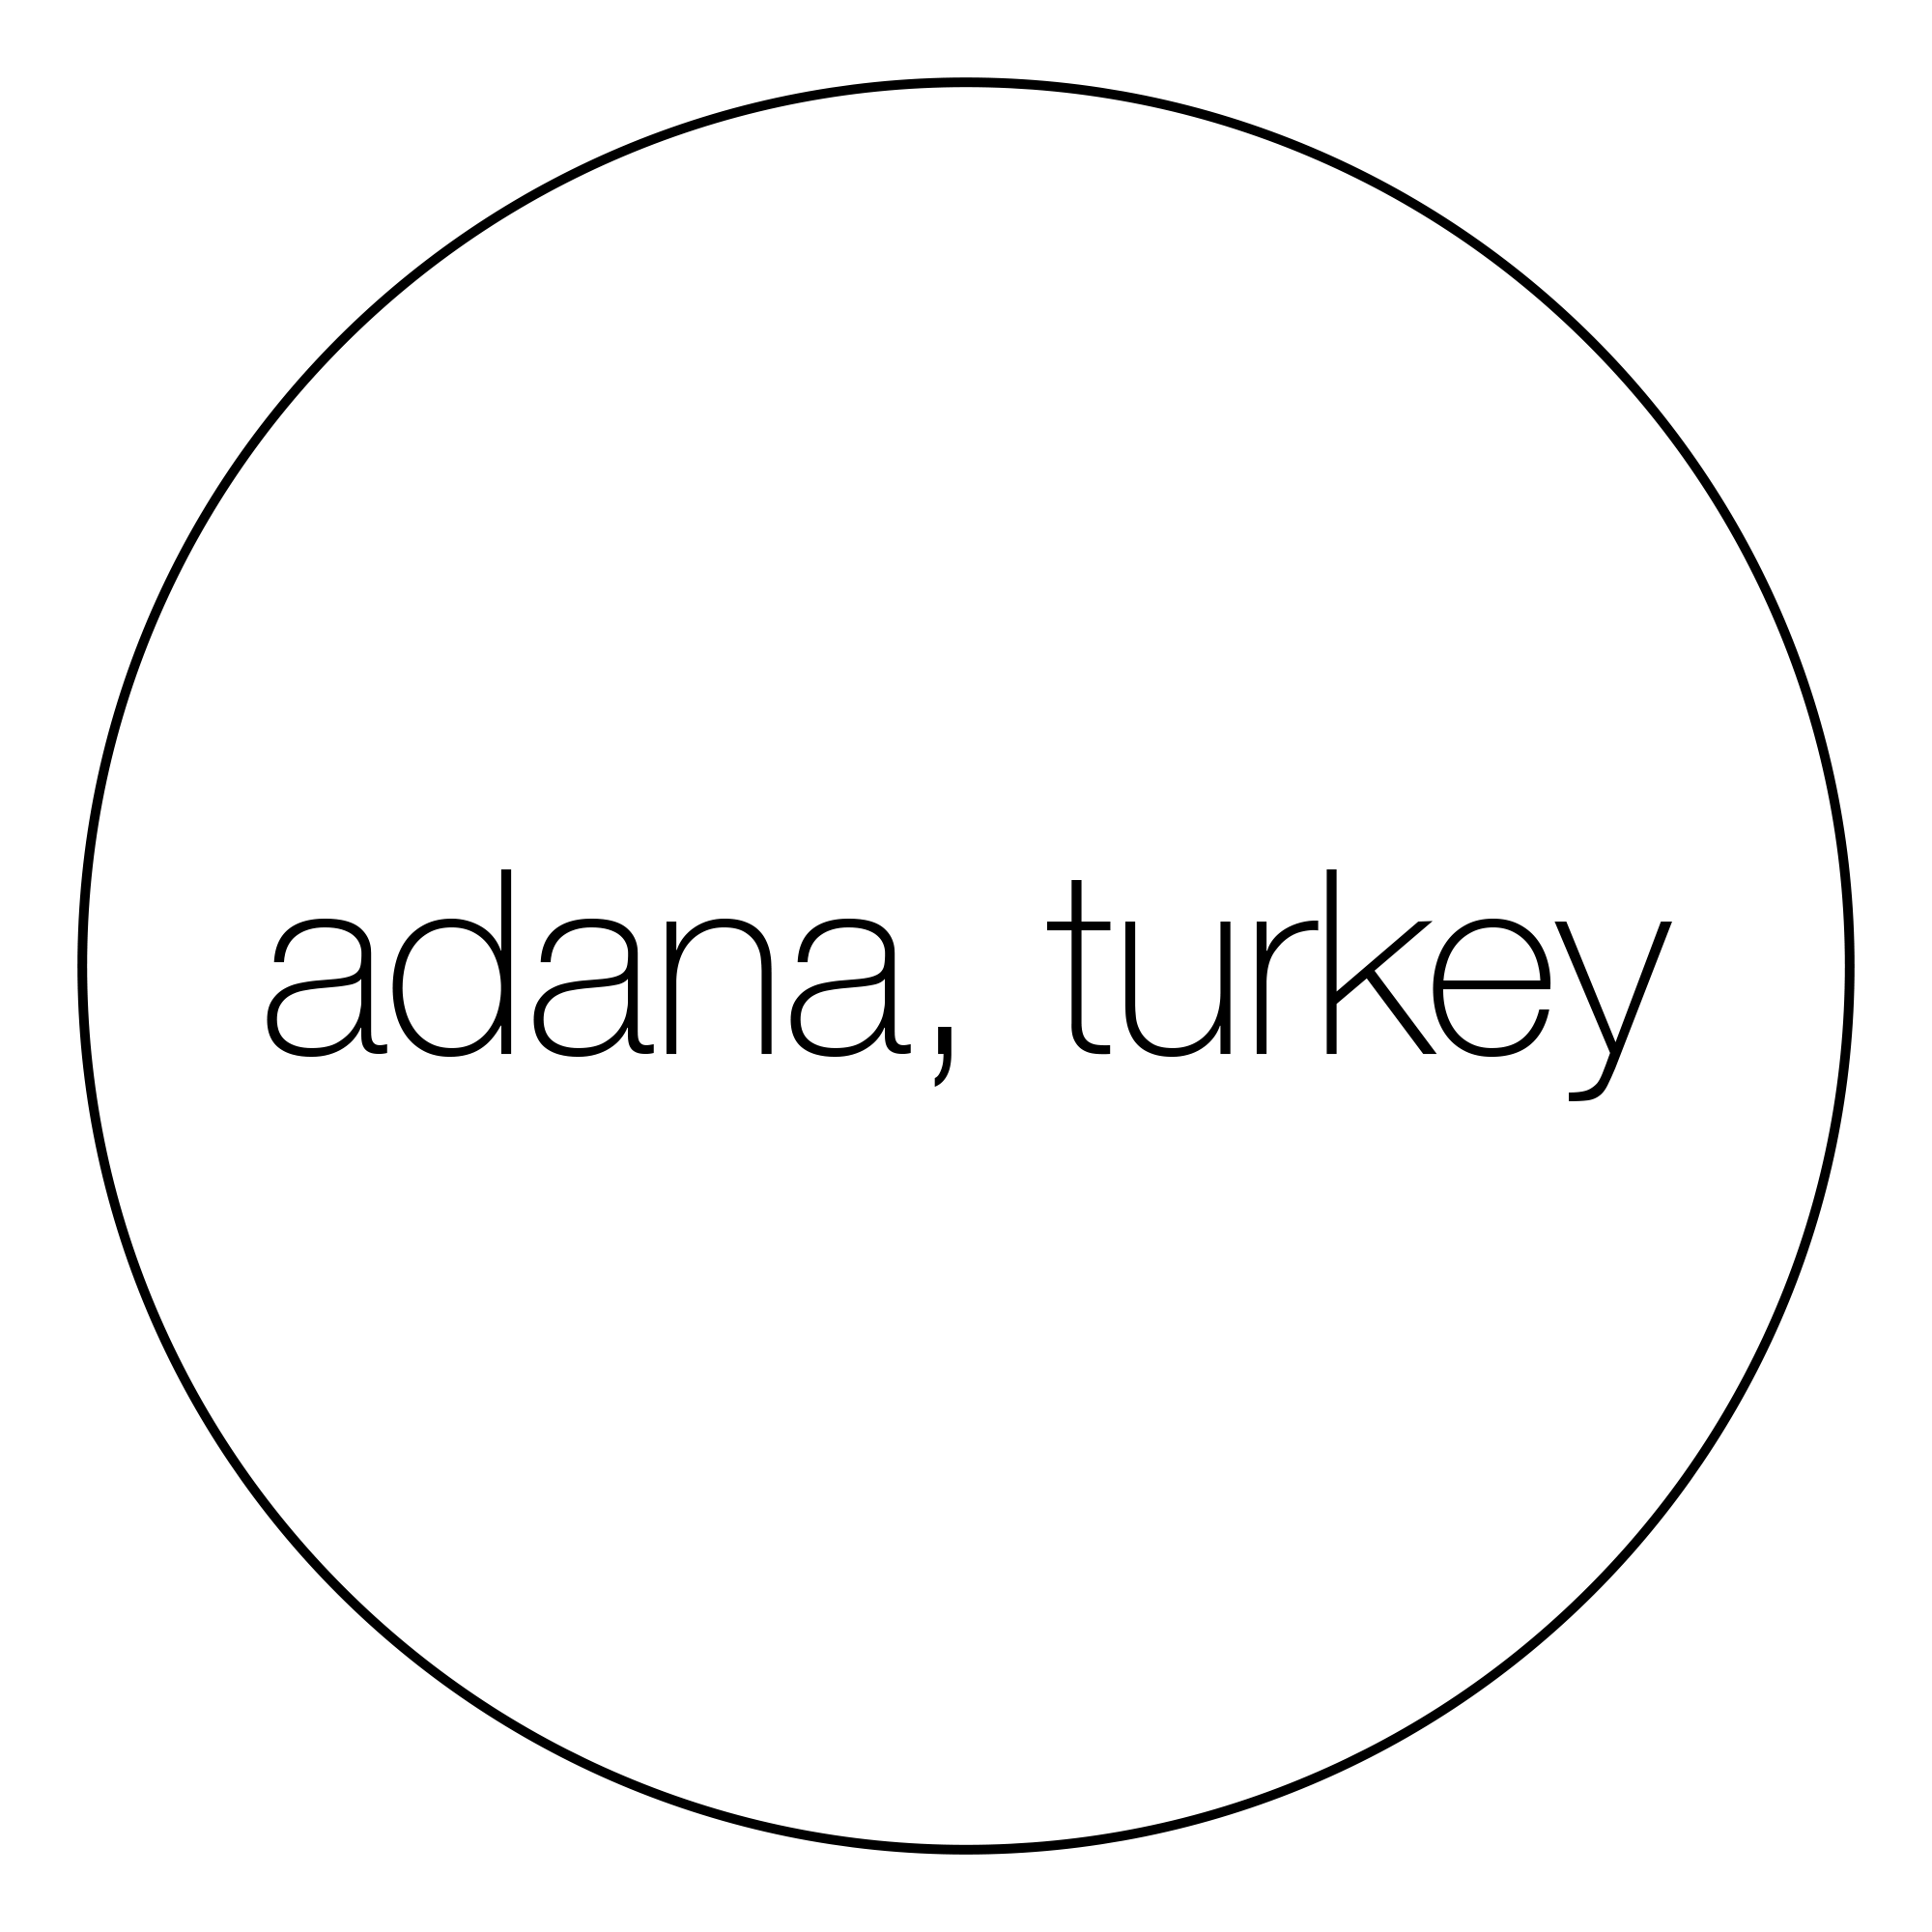 attribute-origin-adana-turkey